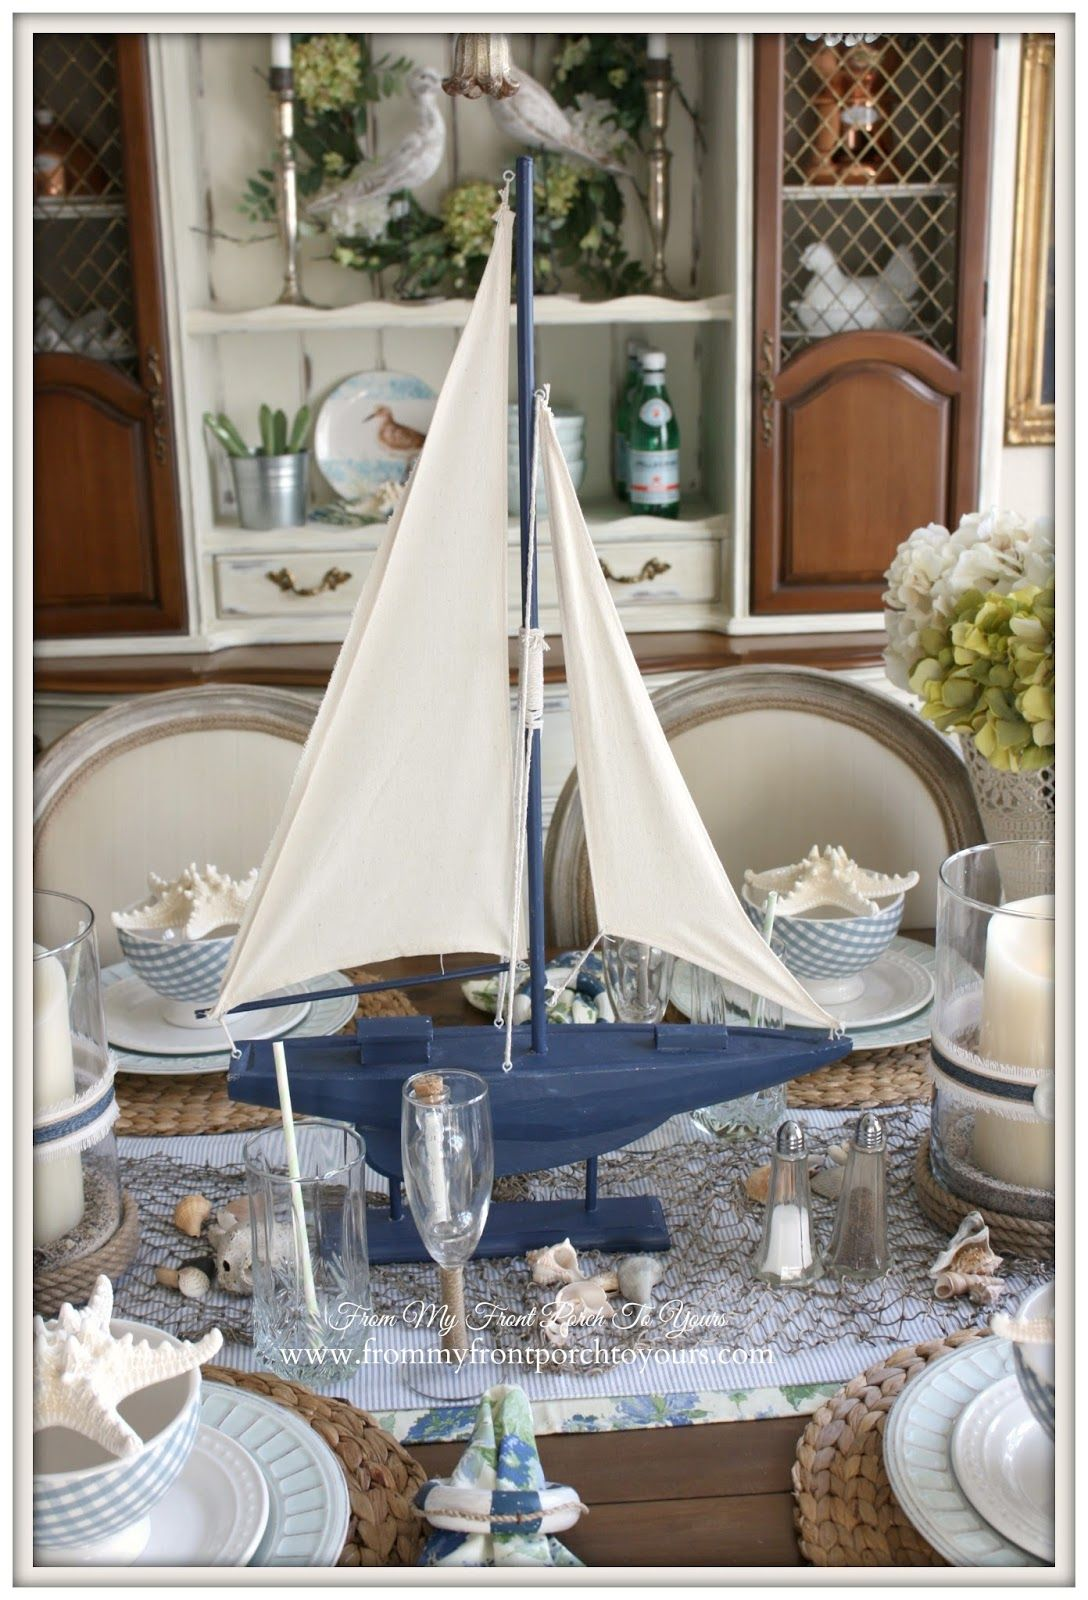 french farmhouse nautical dining room welcome home summer tour - Dining Room Table Settings